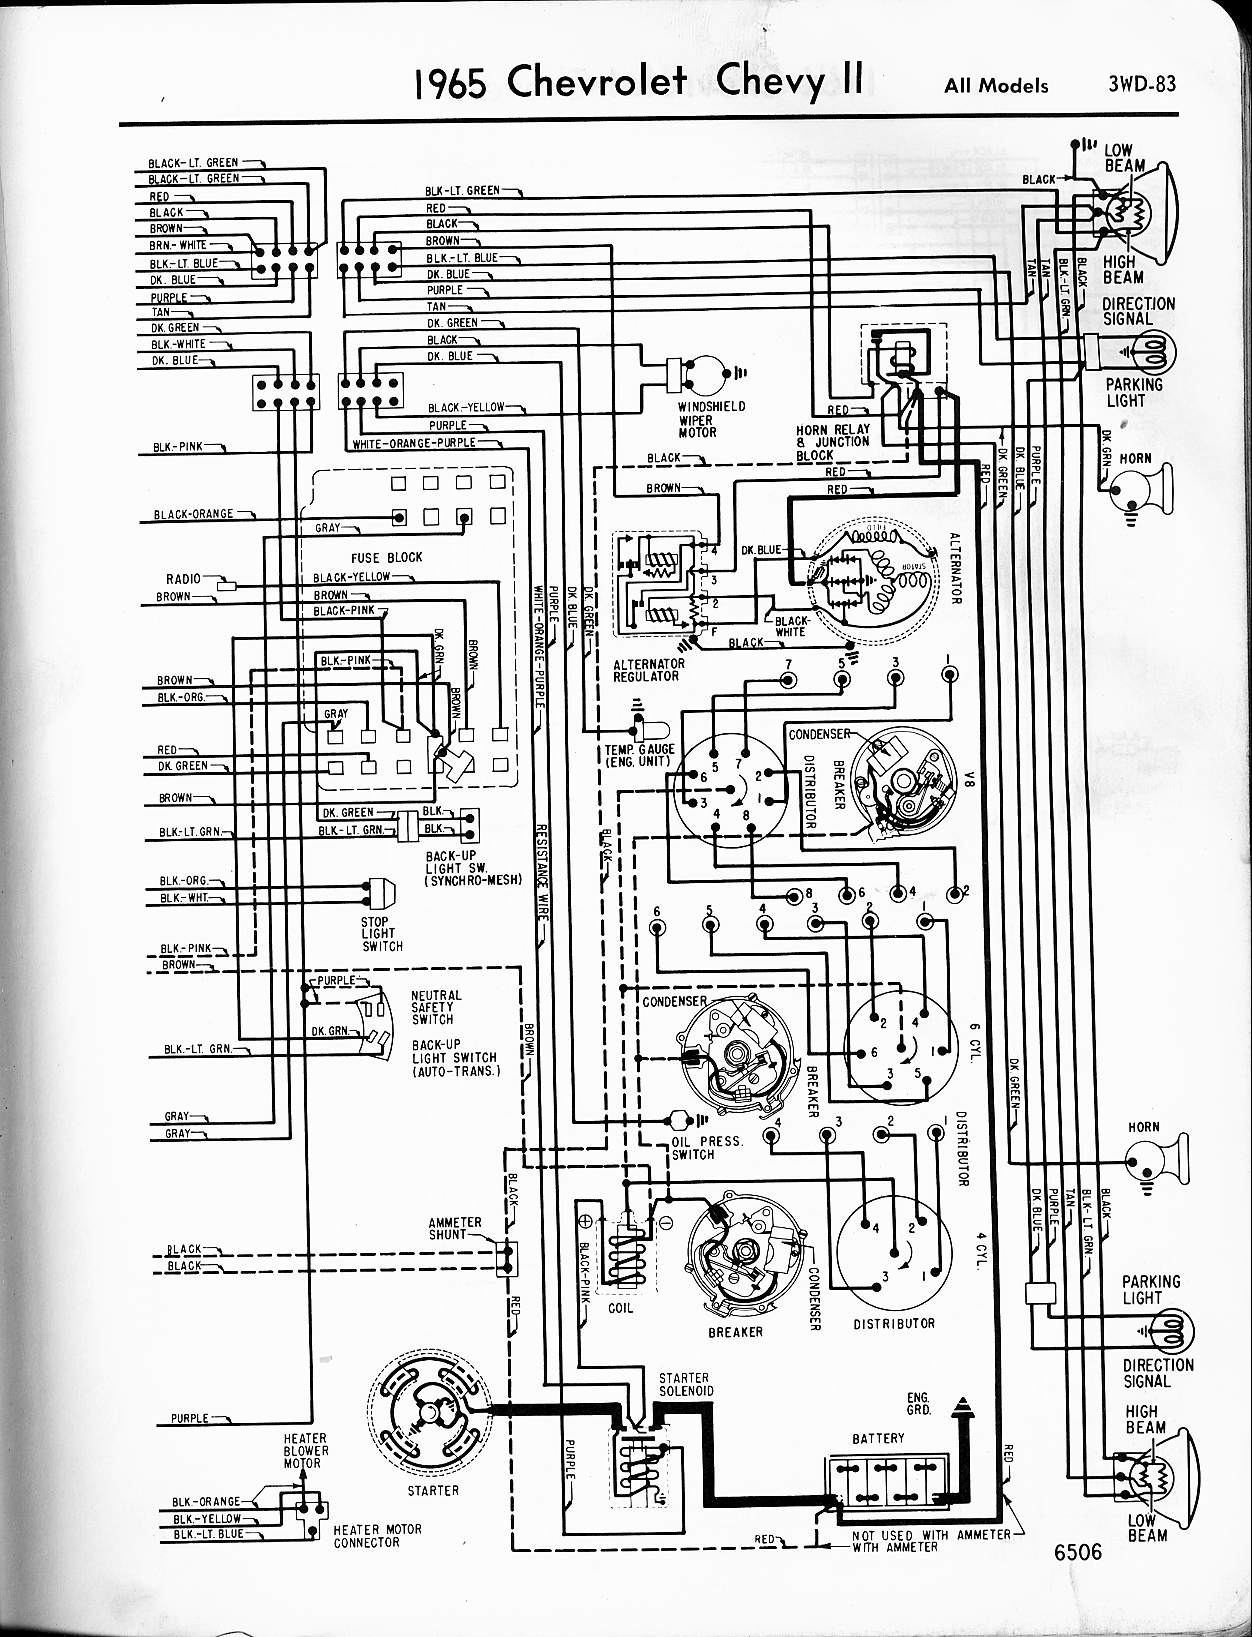 1970 Chevy Wiring Diagram - 0.suavvqli.timmarshall.info • on 1974 corvette wiring diagram, chevy alternator wiring diagram, 1967 c10 chassis, 1967 c10 brake system, 1967 c10 door, chevy tail light wiring diagram, 1967 c10 rear suspension, 1967 c10 engine, 1967 c10 frame, 1967 c10 parts, 87 corvette wiring diagram, 1967 c10 exhaust, 1967 c10 headlights, 1967 c10 radiator, 1967 c10 battery, chevy truck wiring diagram, 63 corvette wiring diagram, 82 corvette wiring diagram, 1967 c10 air conditioning, 1967 c10 wheels,